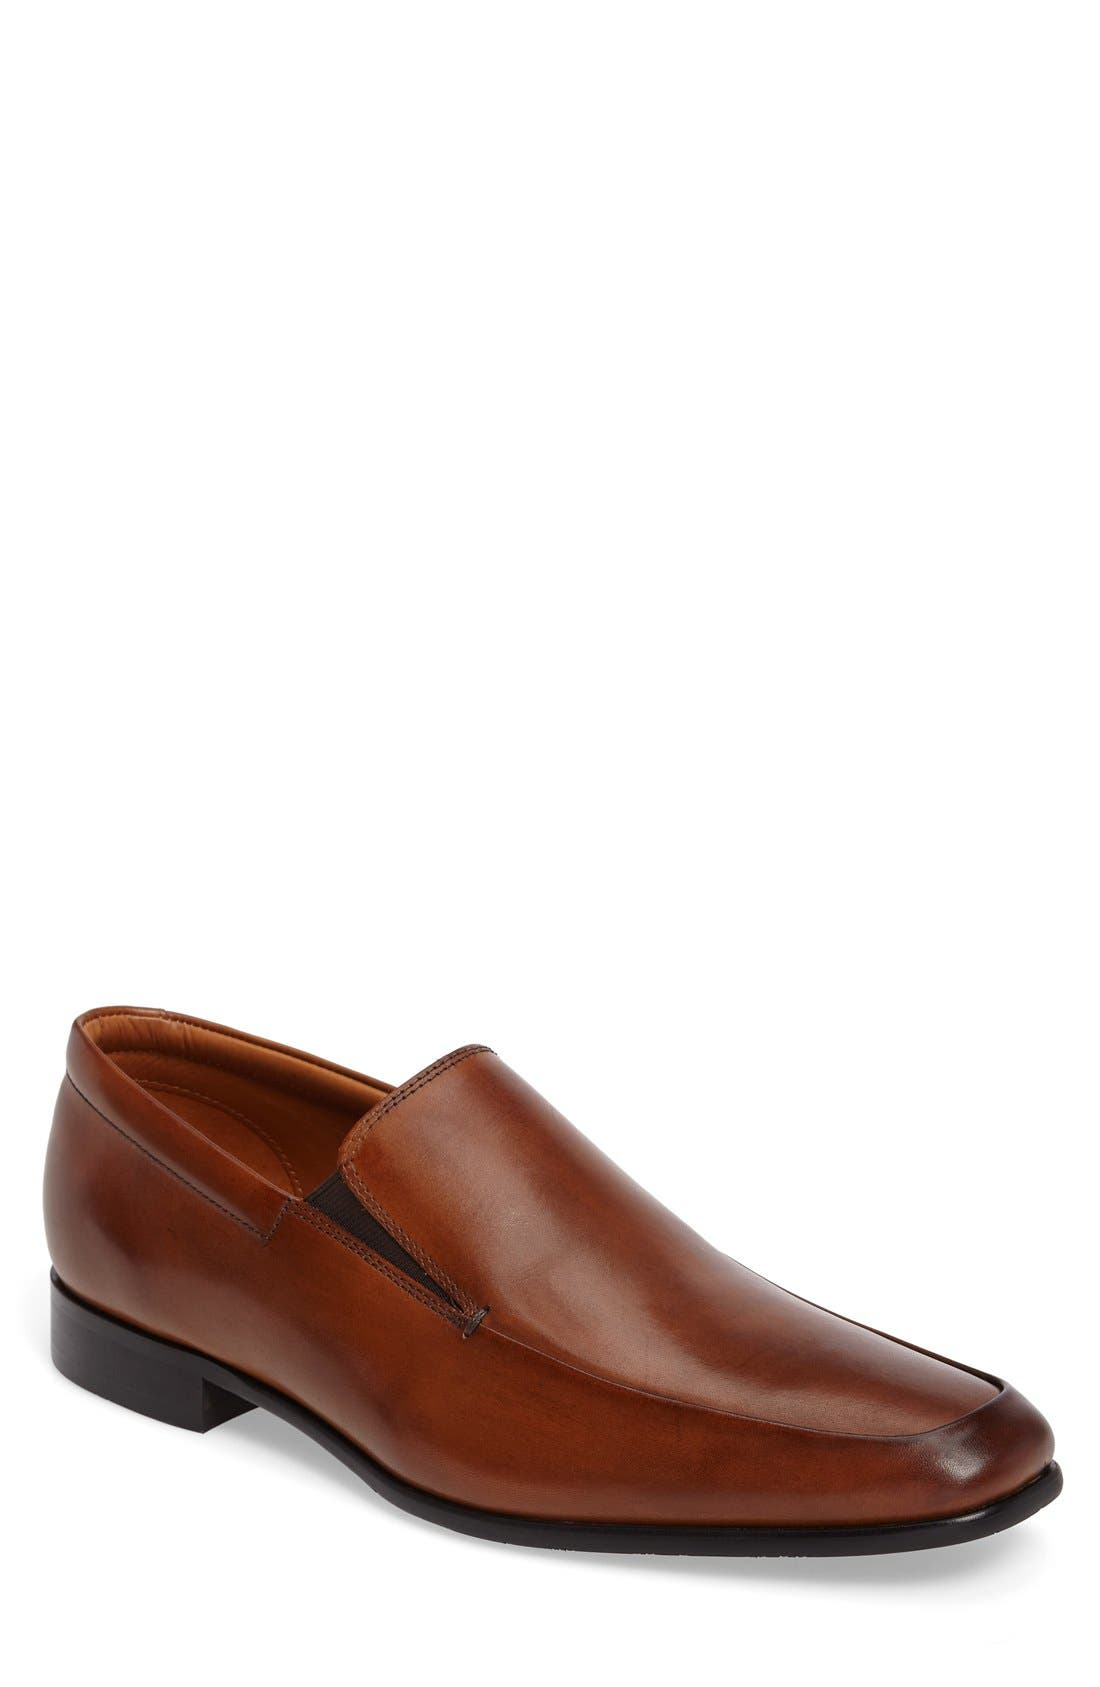 'Elliot' Venetian Loafer,                             Main thumbnail 1, color,                             Cognac